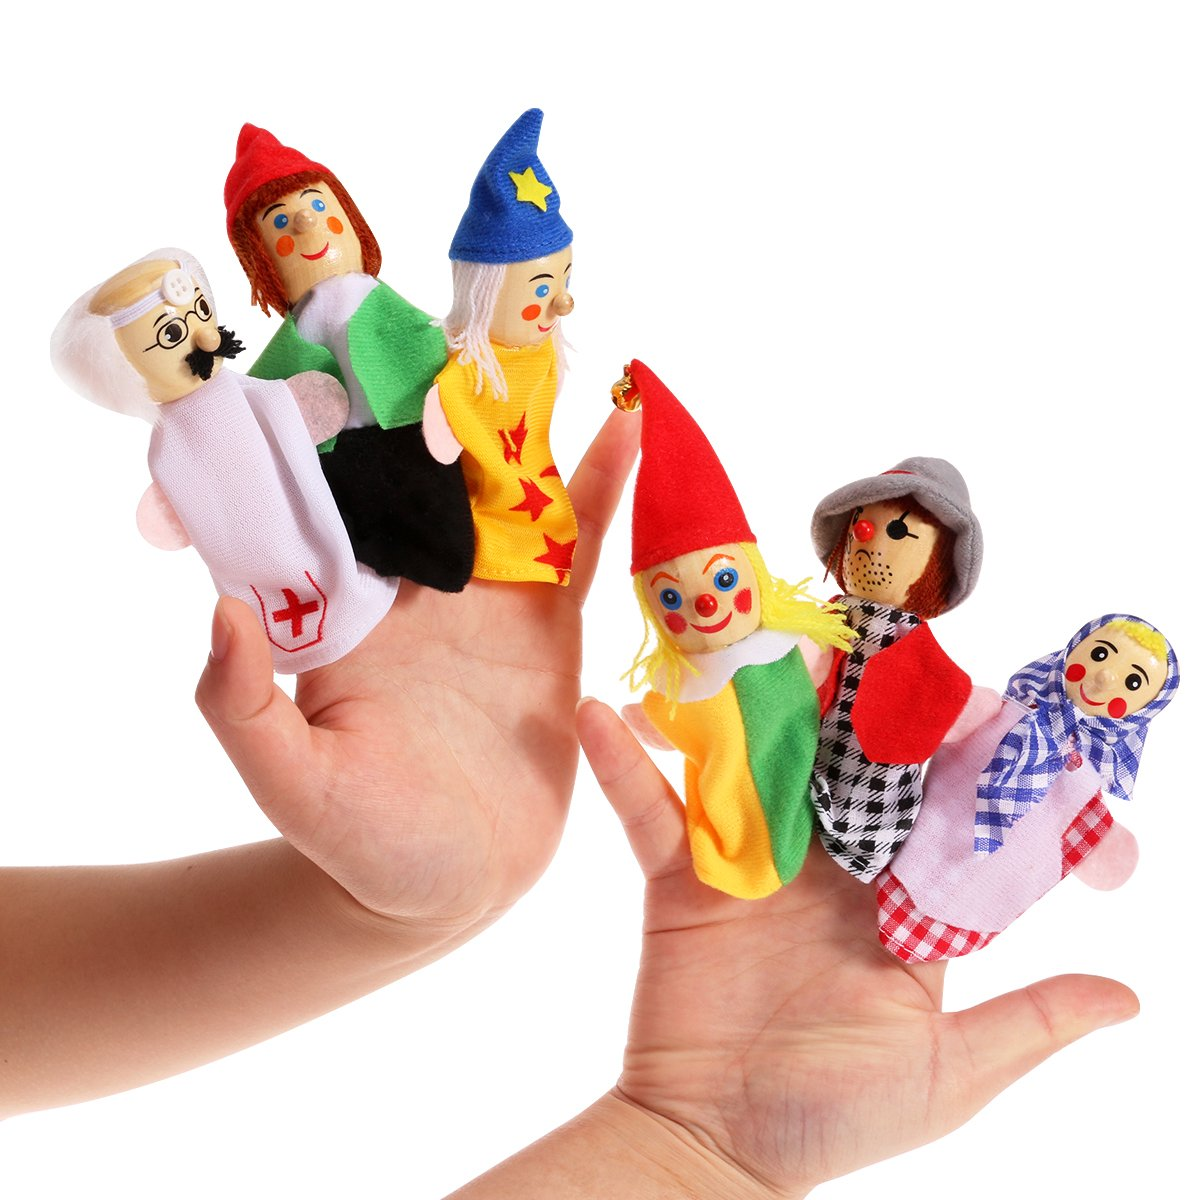 NUOLUX Wooden Finger Puppets Soft Velvet Dolls Props Toys 6pcs Includes Clown/Taoist/Worker/Women/Doctor/Pirates